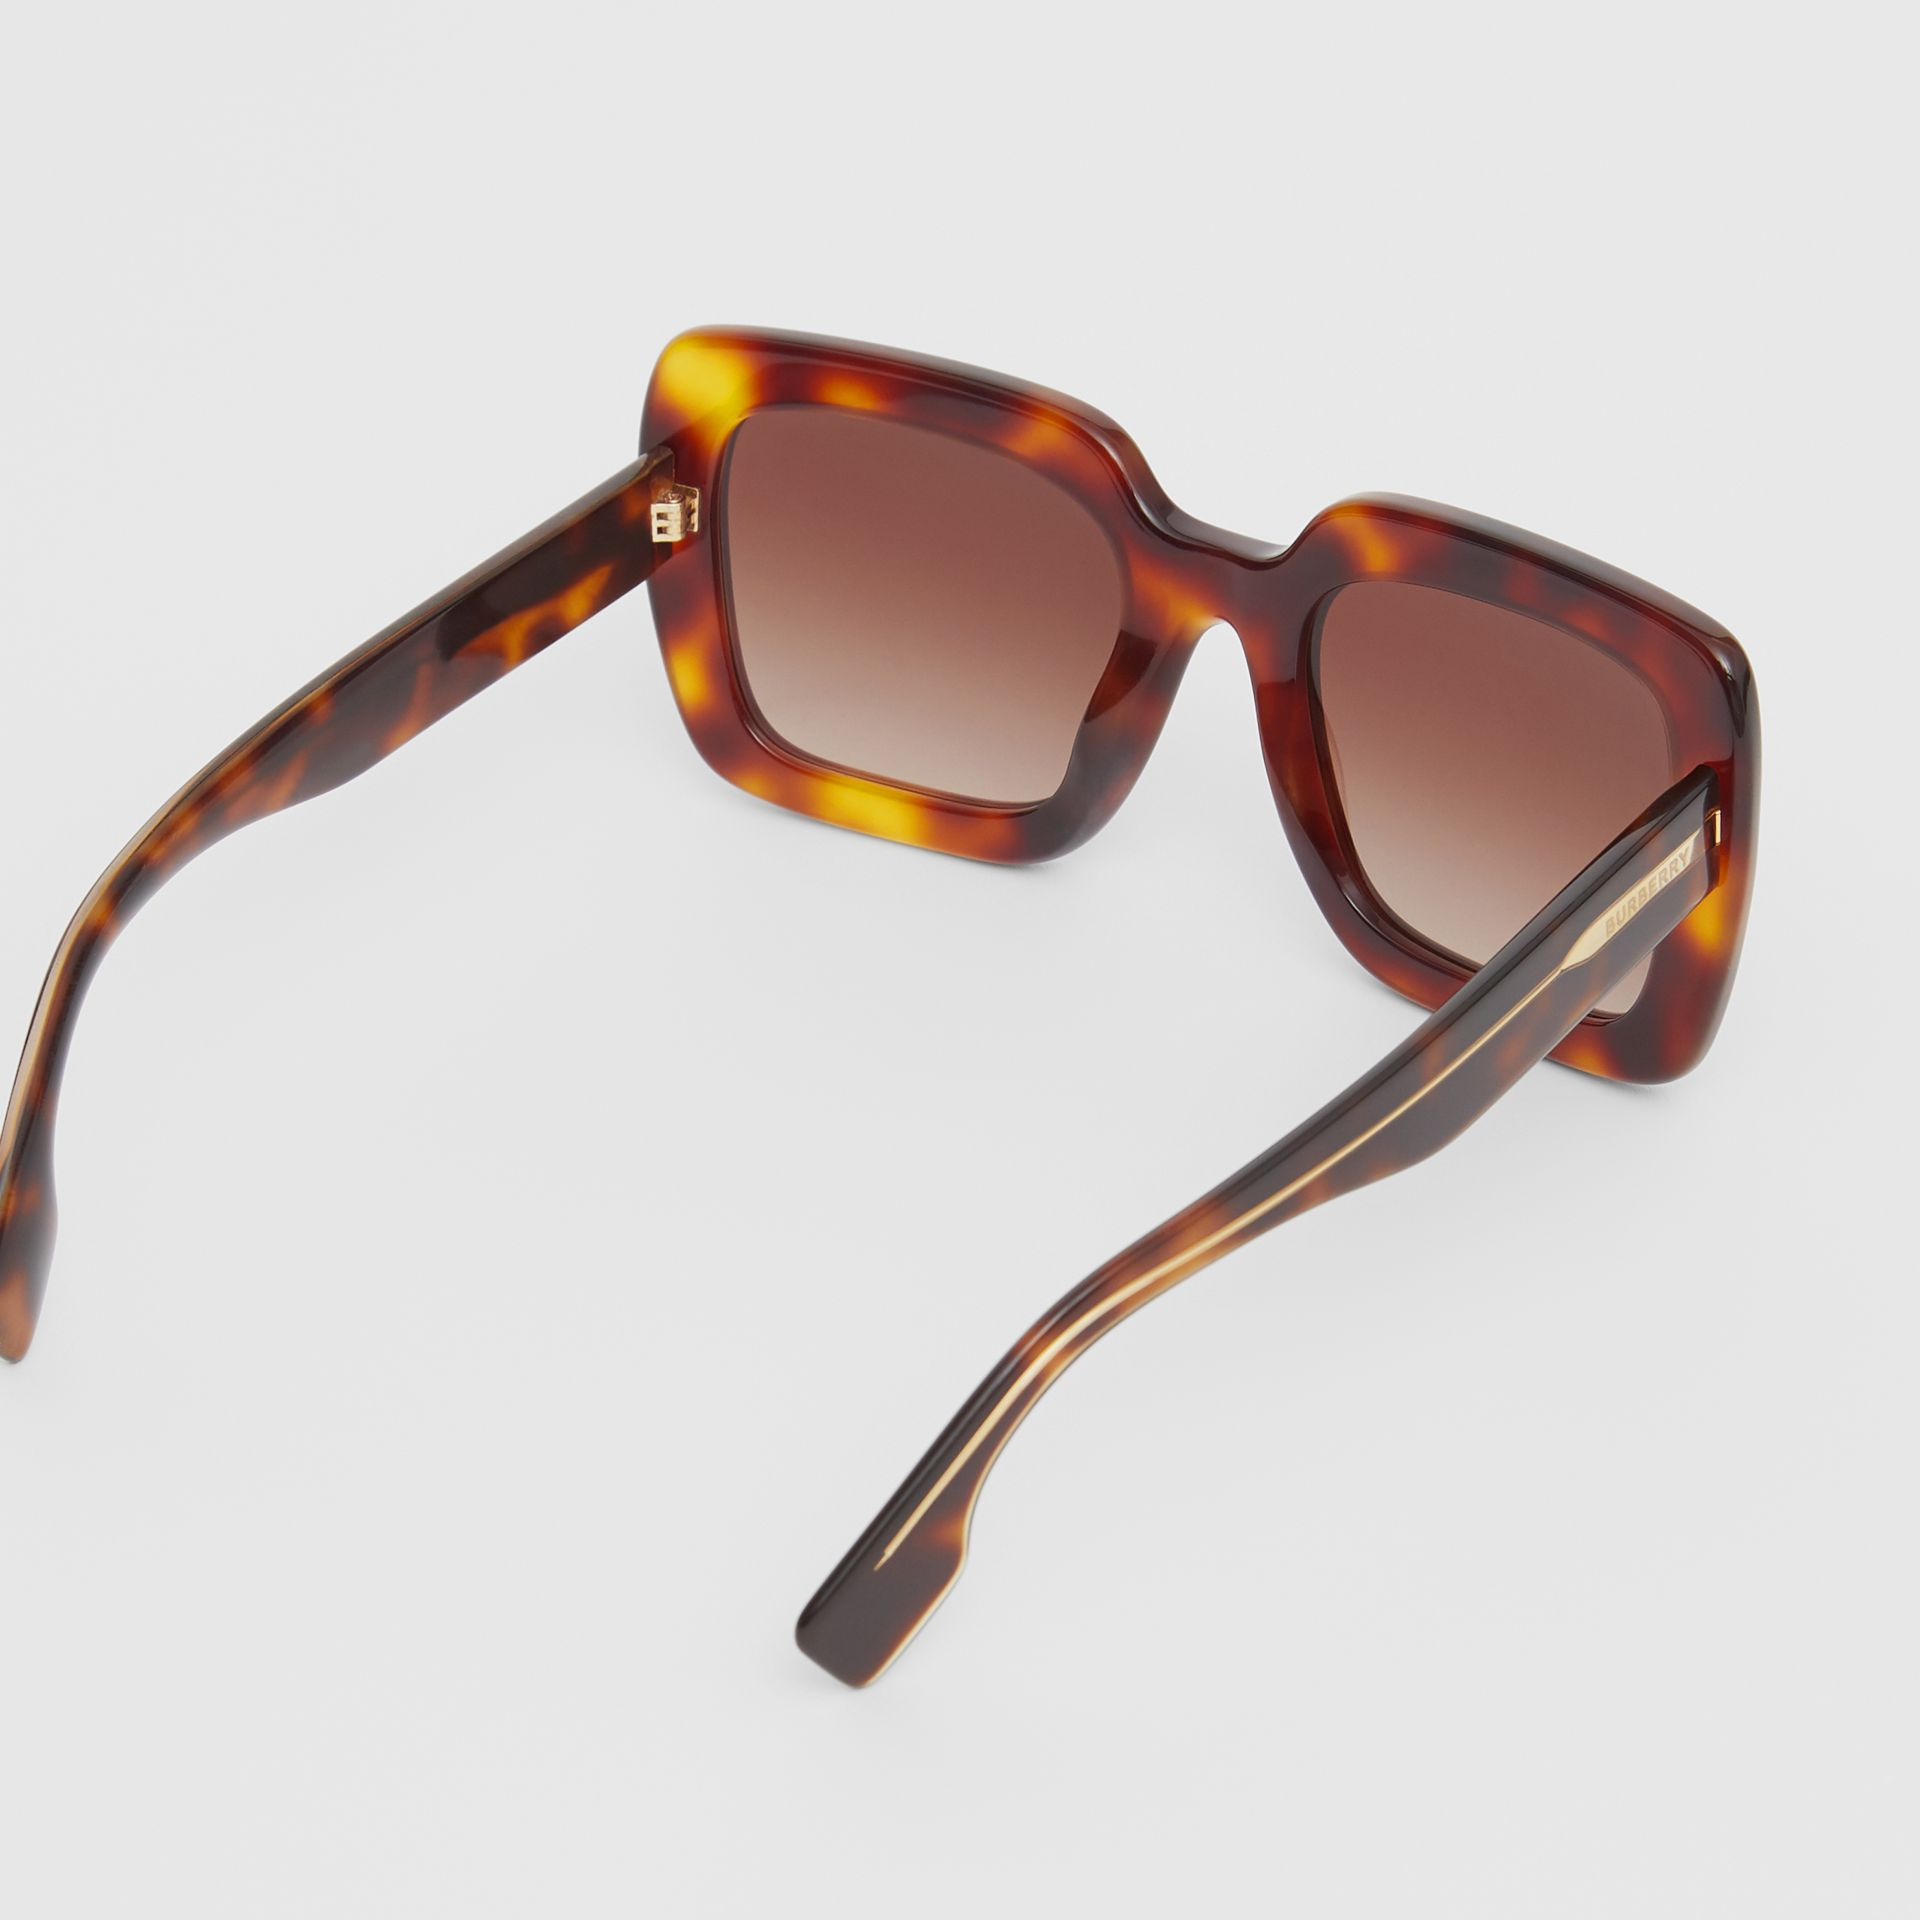 Oversized Square Frame Sunglasses in Tortoiseshell - Women | Burberry - gallery image 3